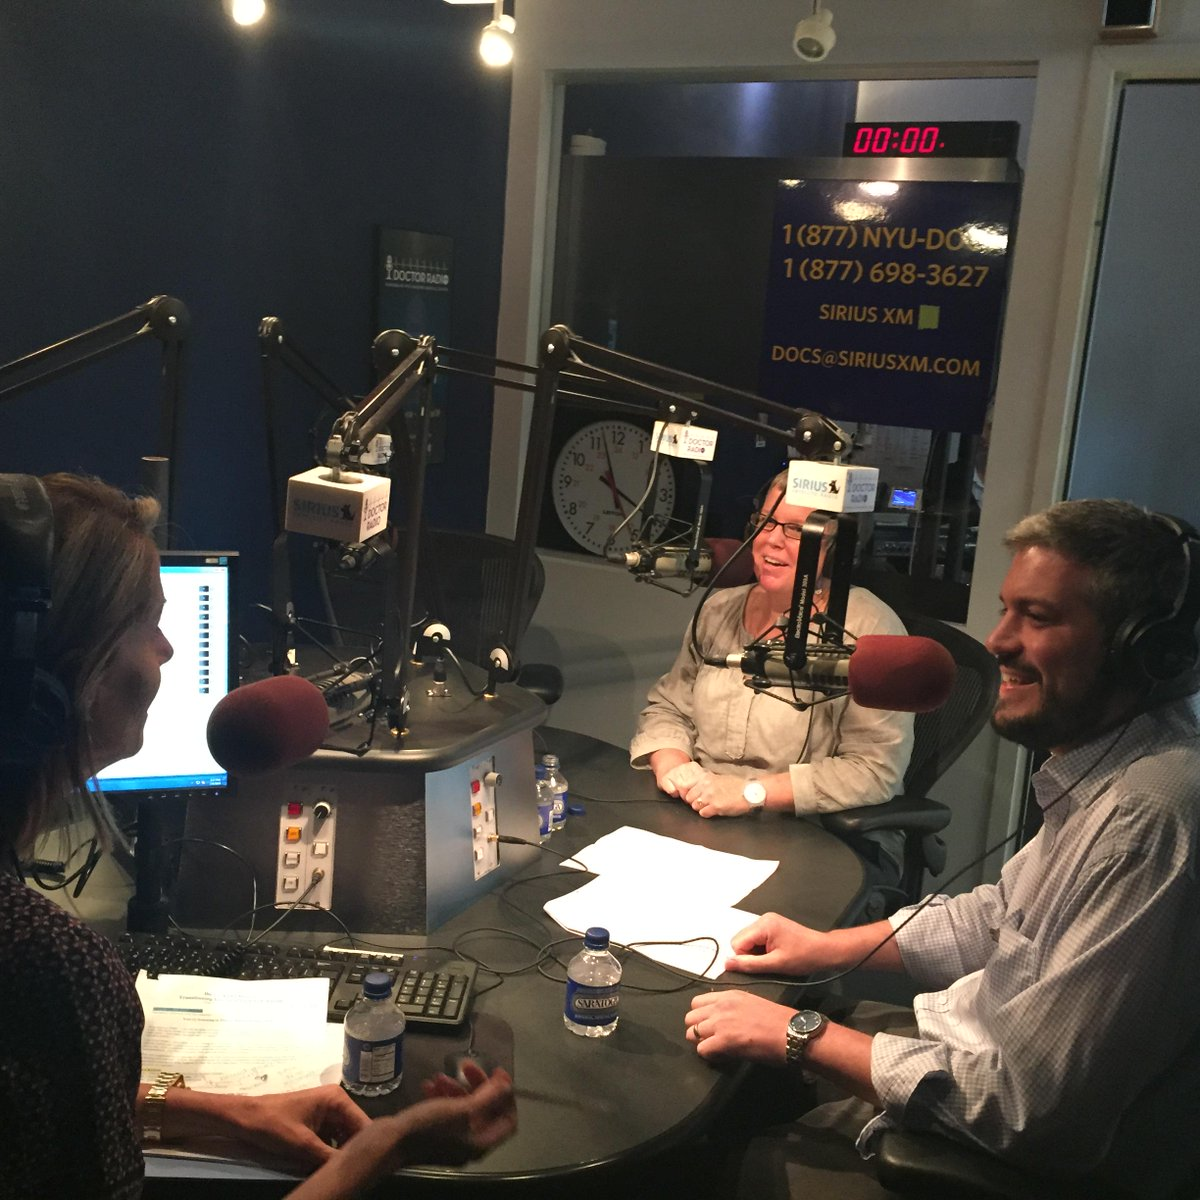 So much enjoyed talking shop yesterday on @NYUDocs with @PerriPeltz @autismspeaks @piwright Show replaying now! http://t.co/7xts2c4ETY